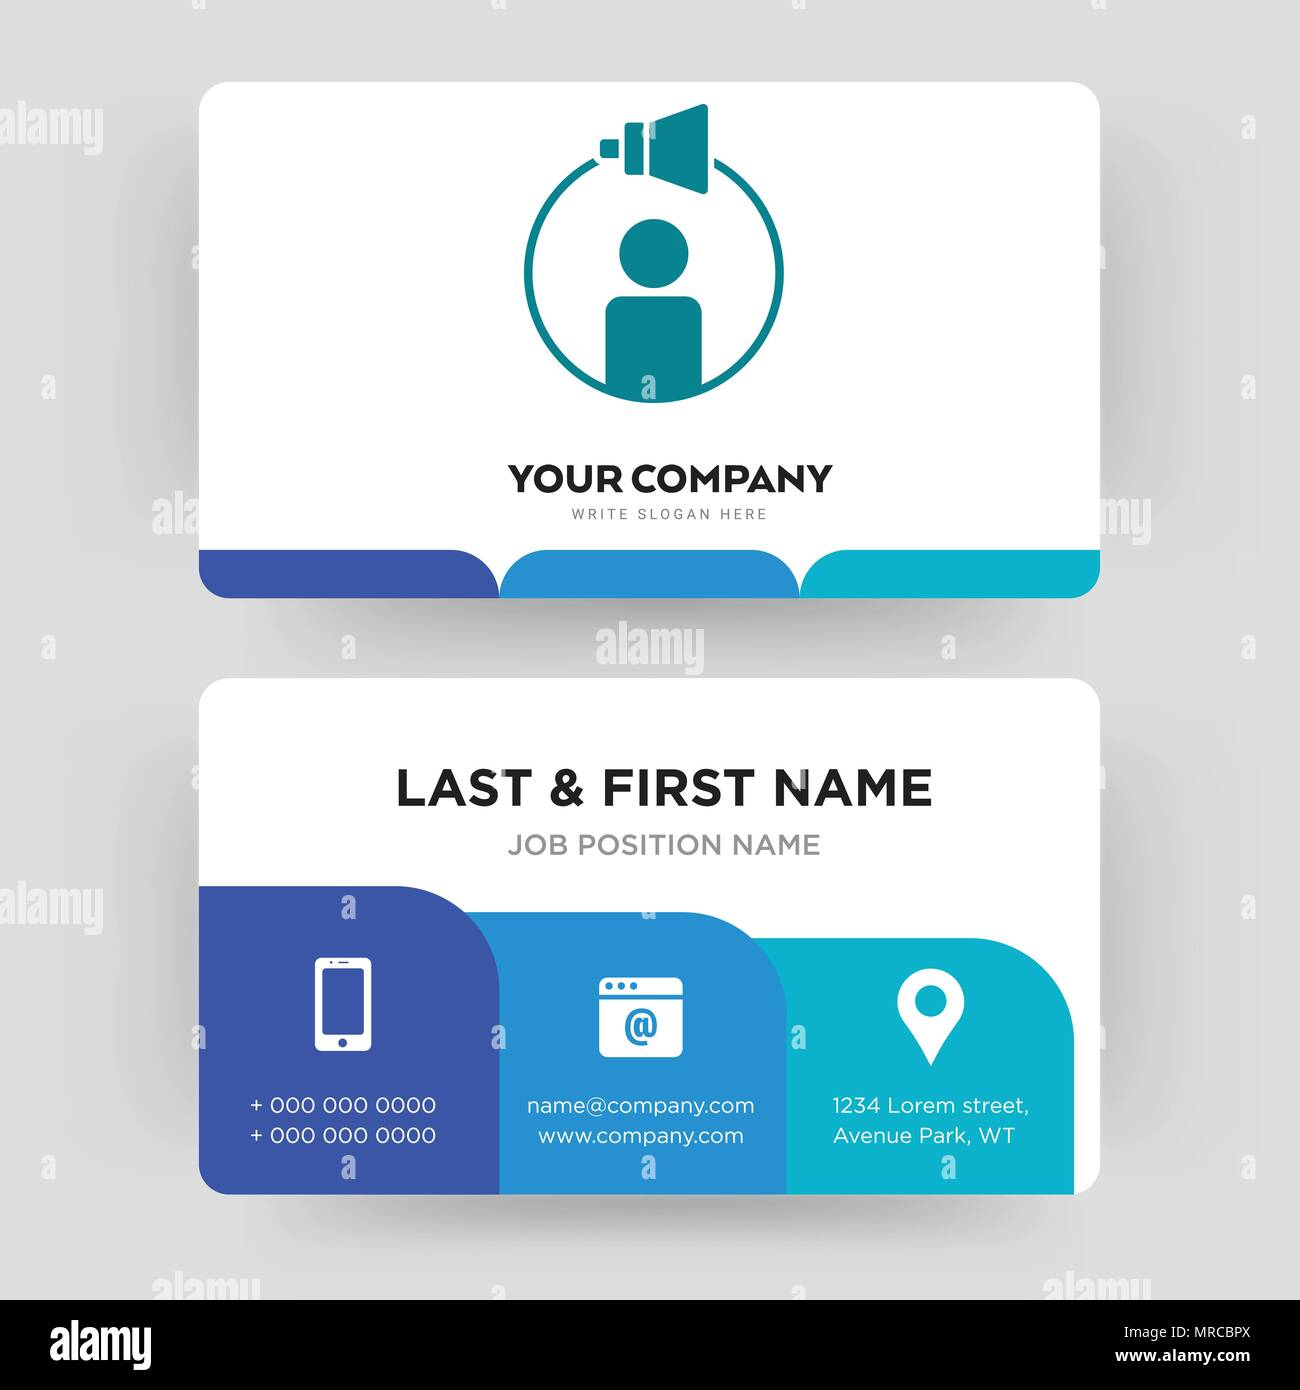 Campaign Management Business Card Design Template Visiting For